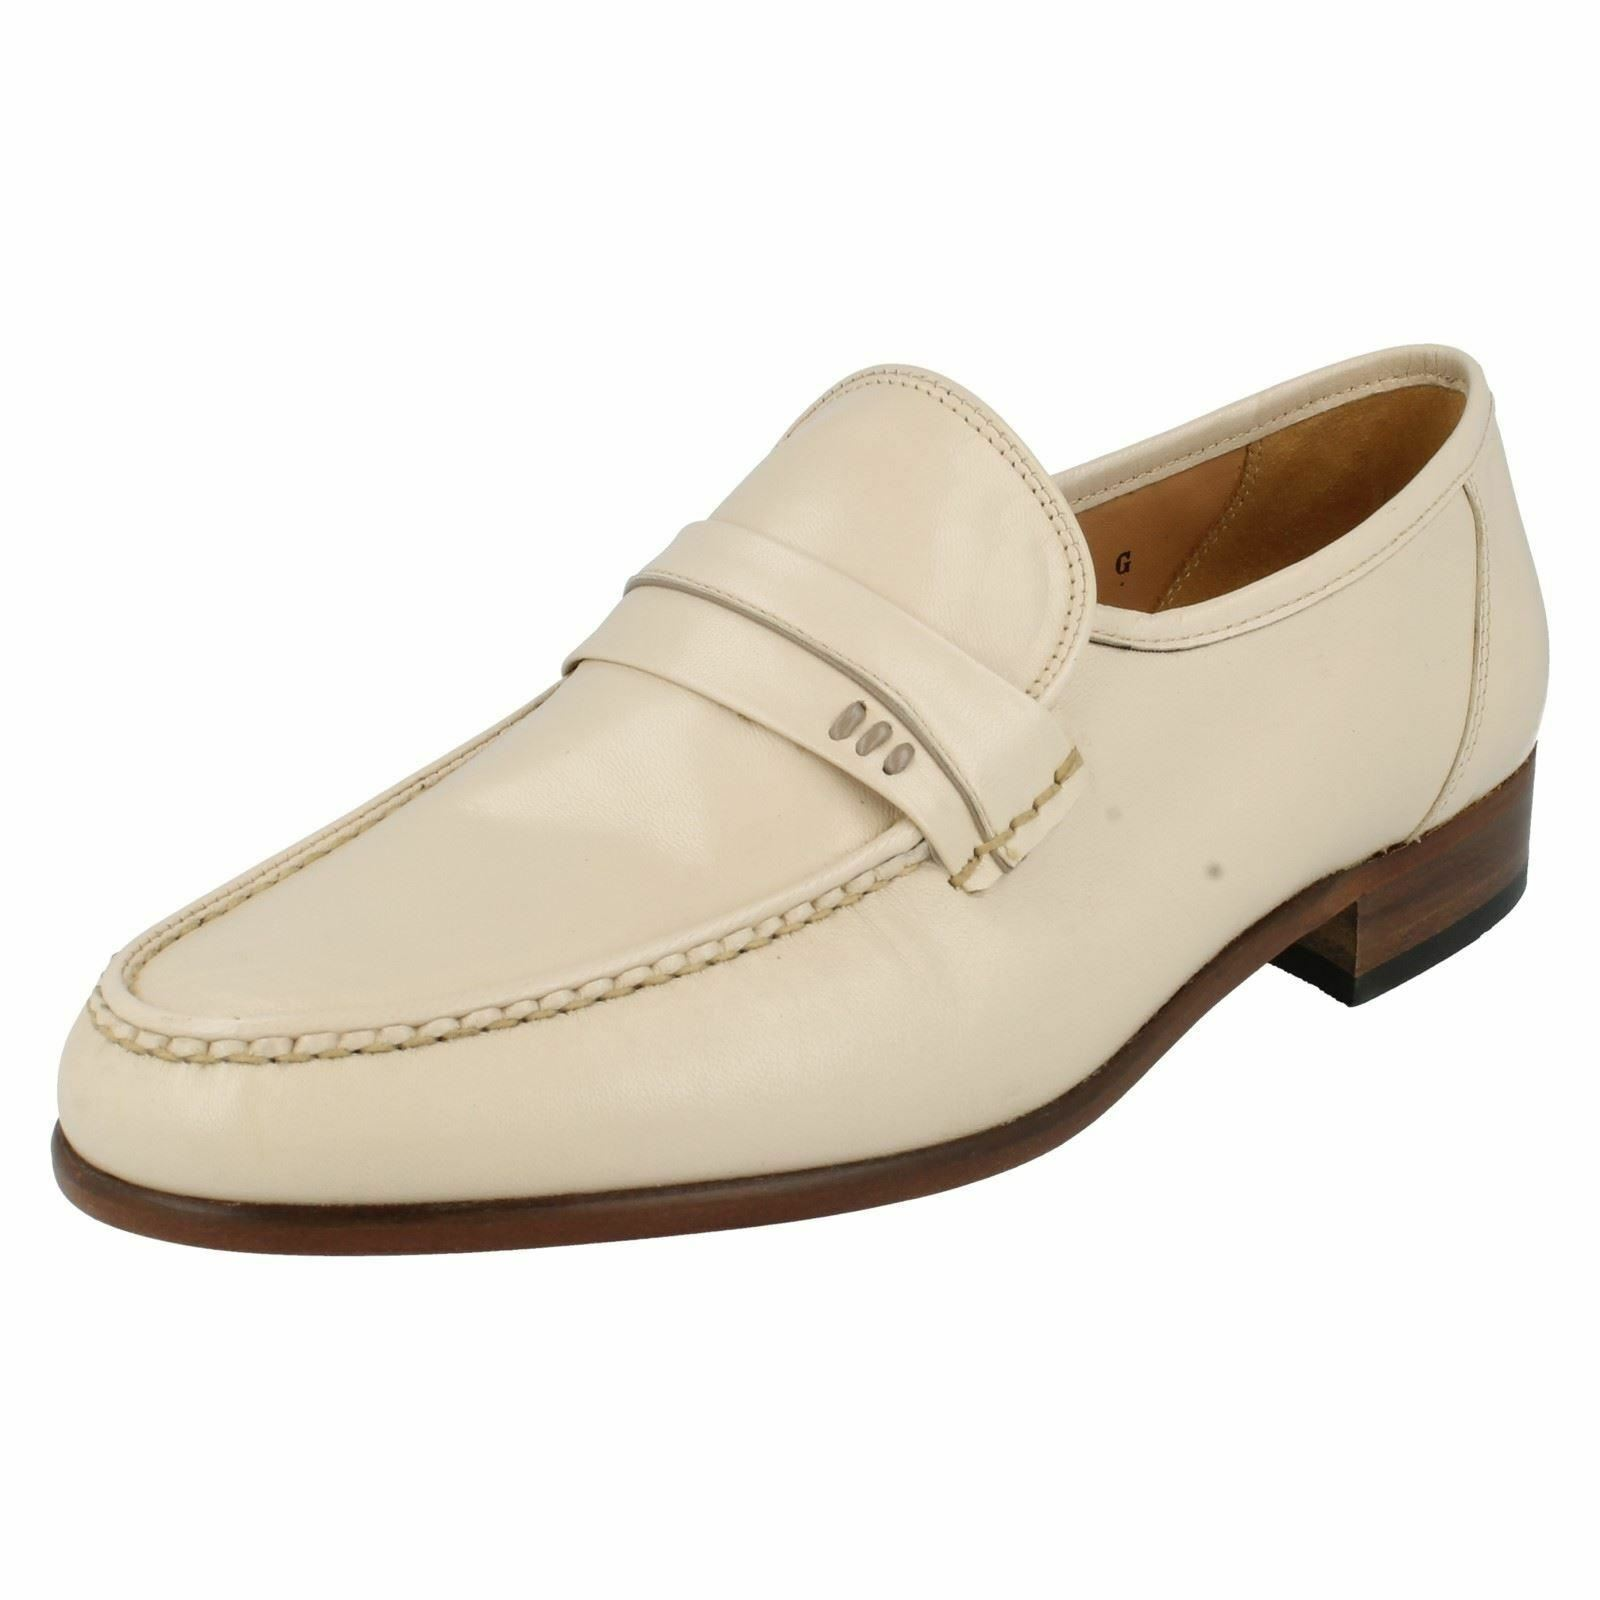 Herren Grenson Moccasin Slip On Schuhe Arizona